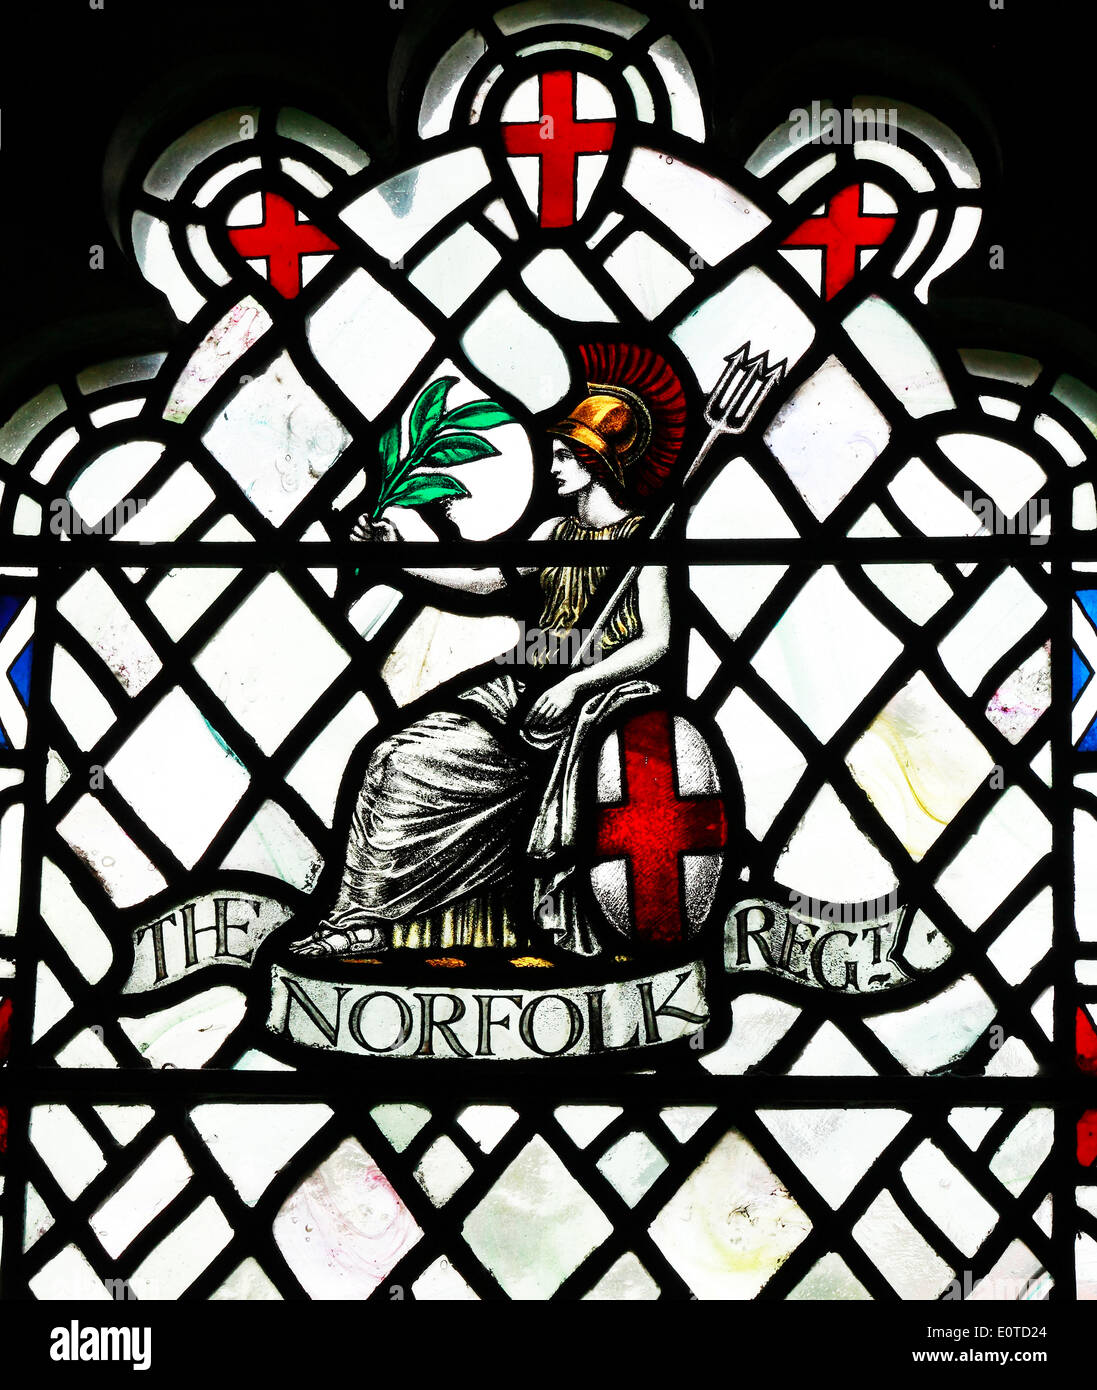 Memorial stained glass to the Norfolk Regiment, who disappeared in 1st World War, by Karl Parsons 1920, Arts and Crafts style - Stock Image